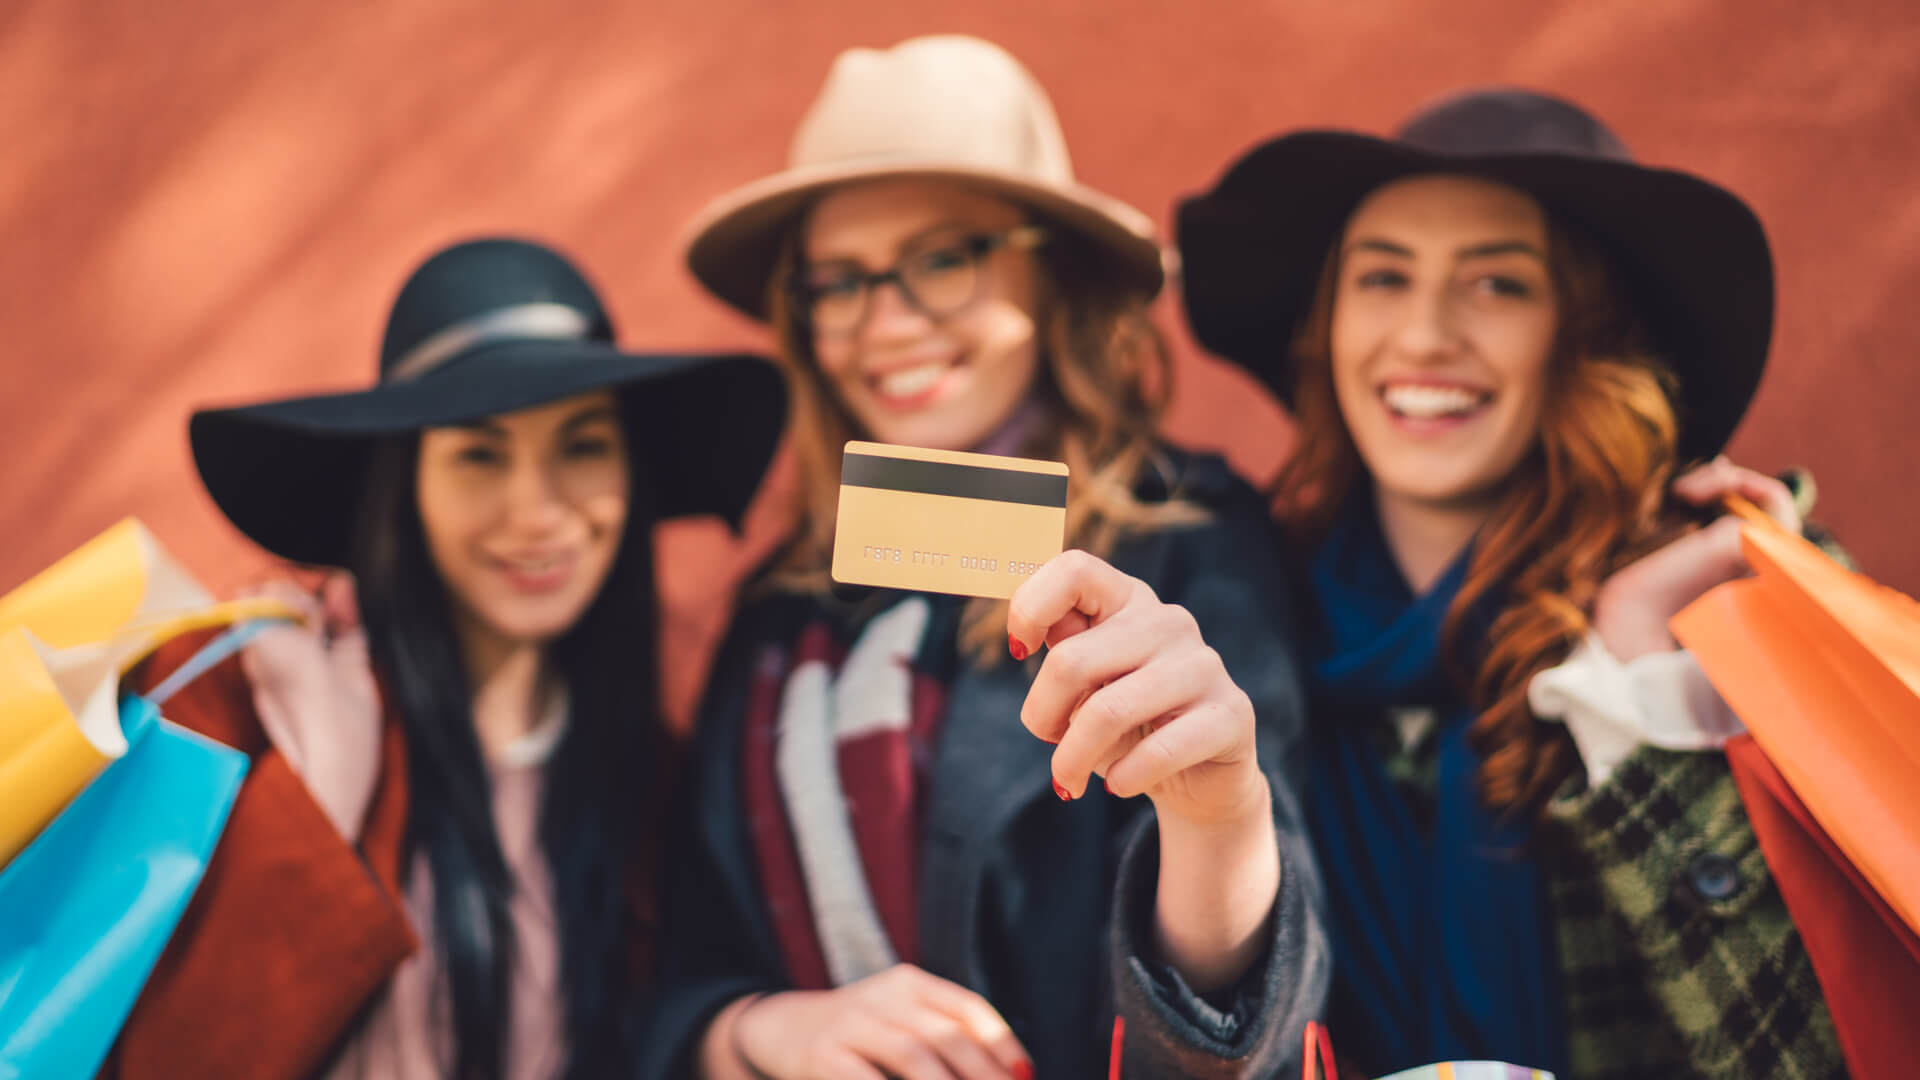 13 Credit Cards That Every 30-Something Should Consider